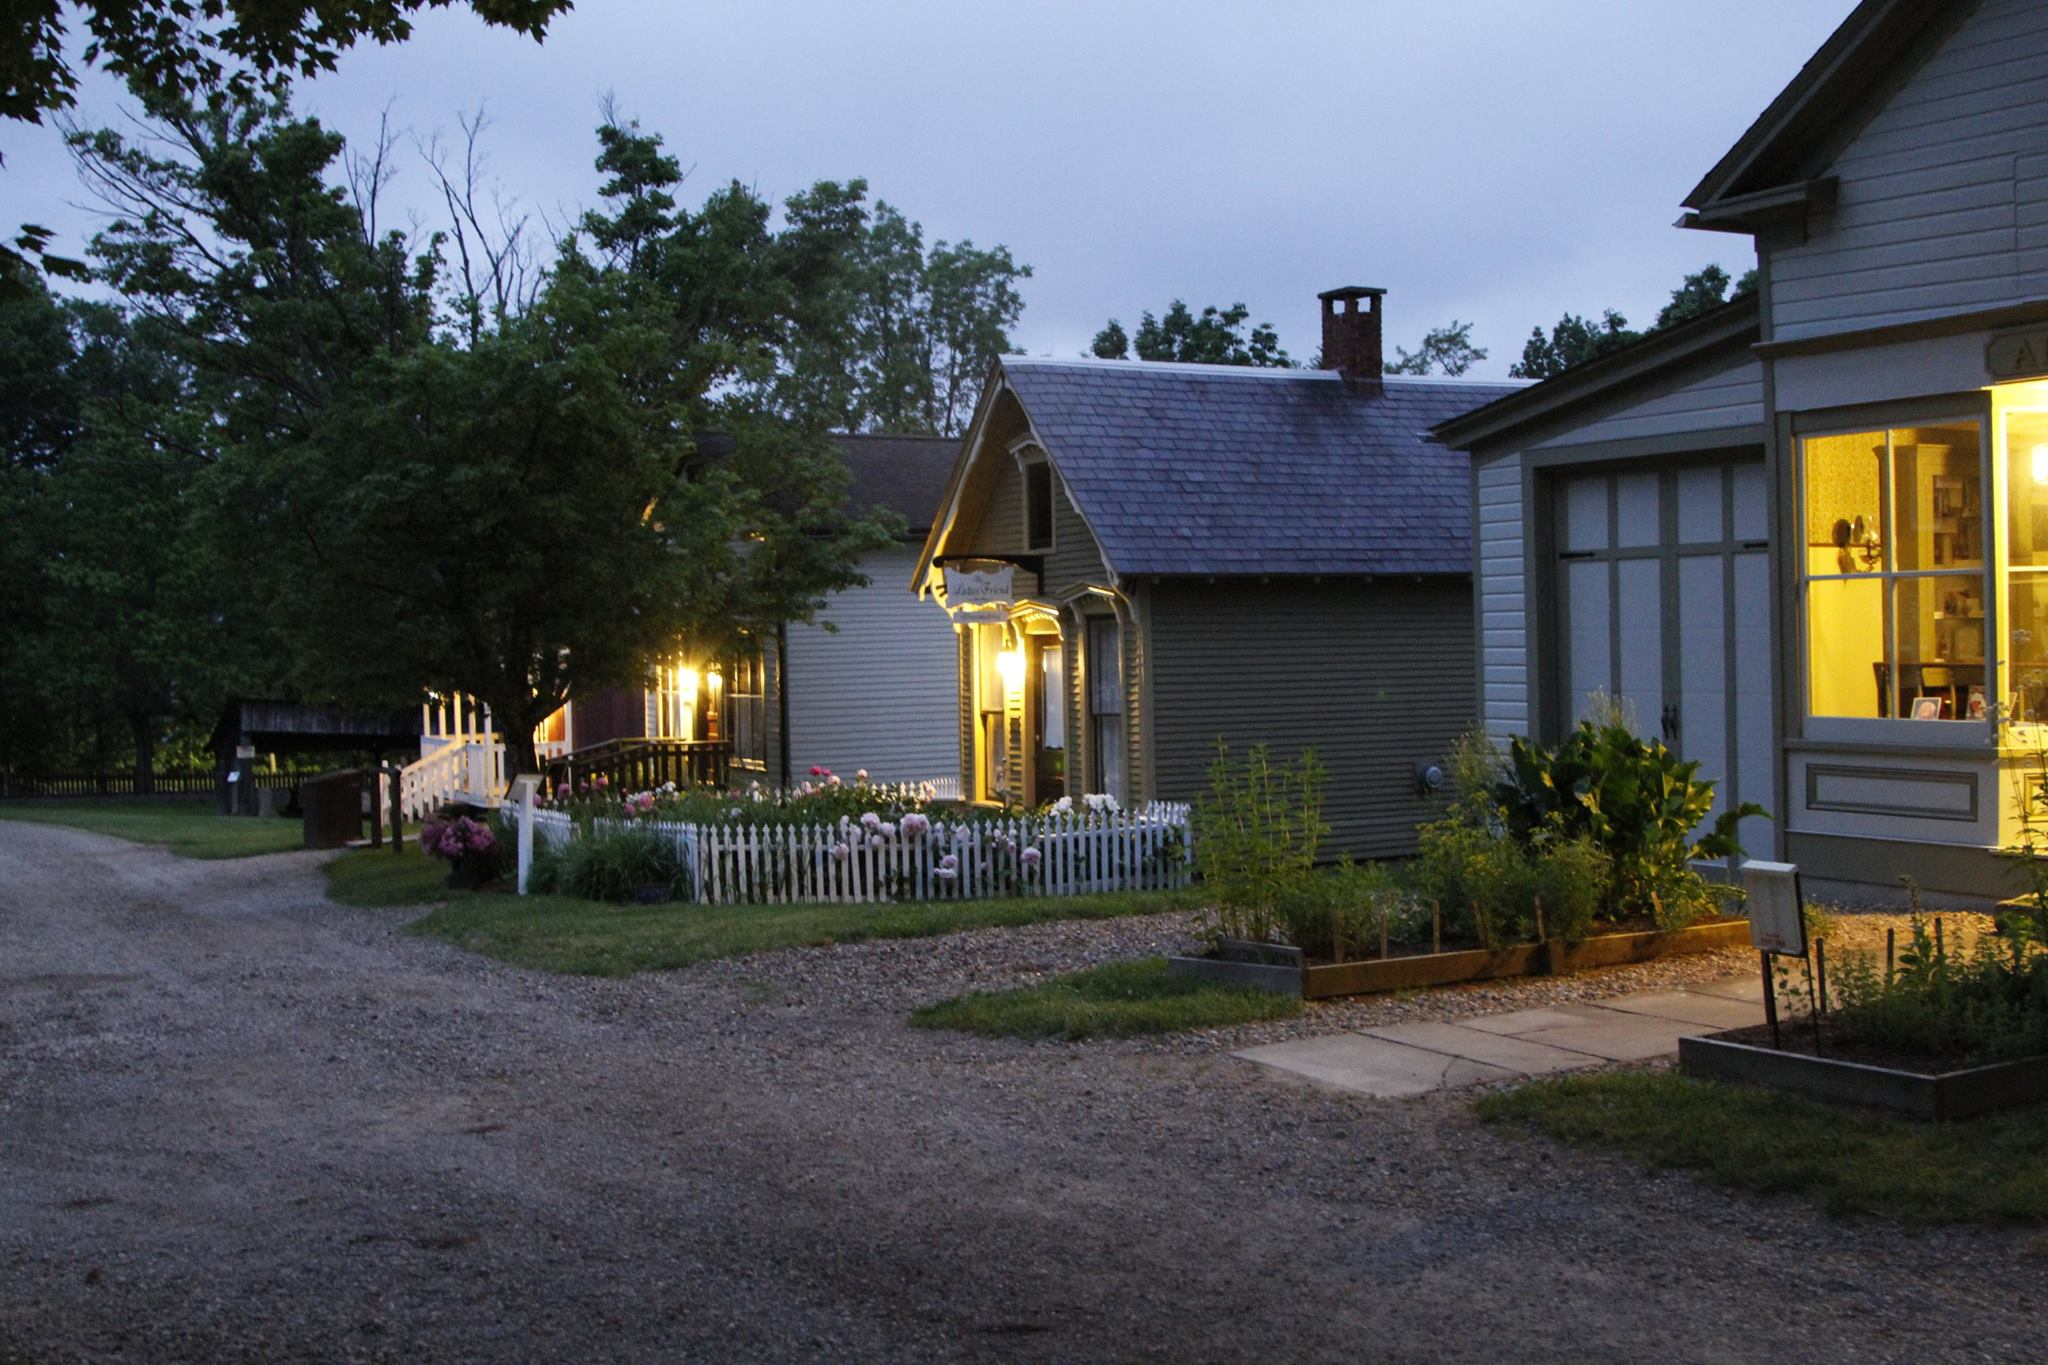 Stroll Back In Time Through Ohio Life In The 1800s At Century Village